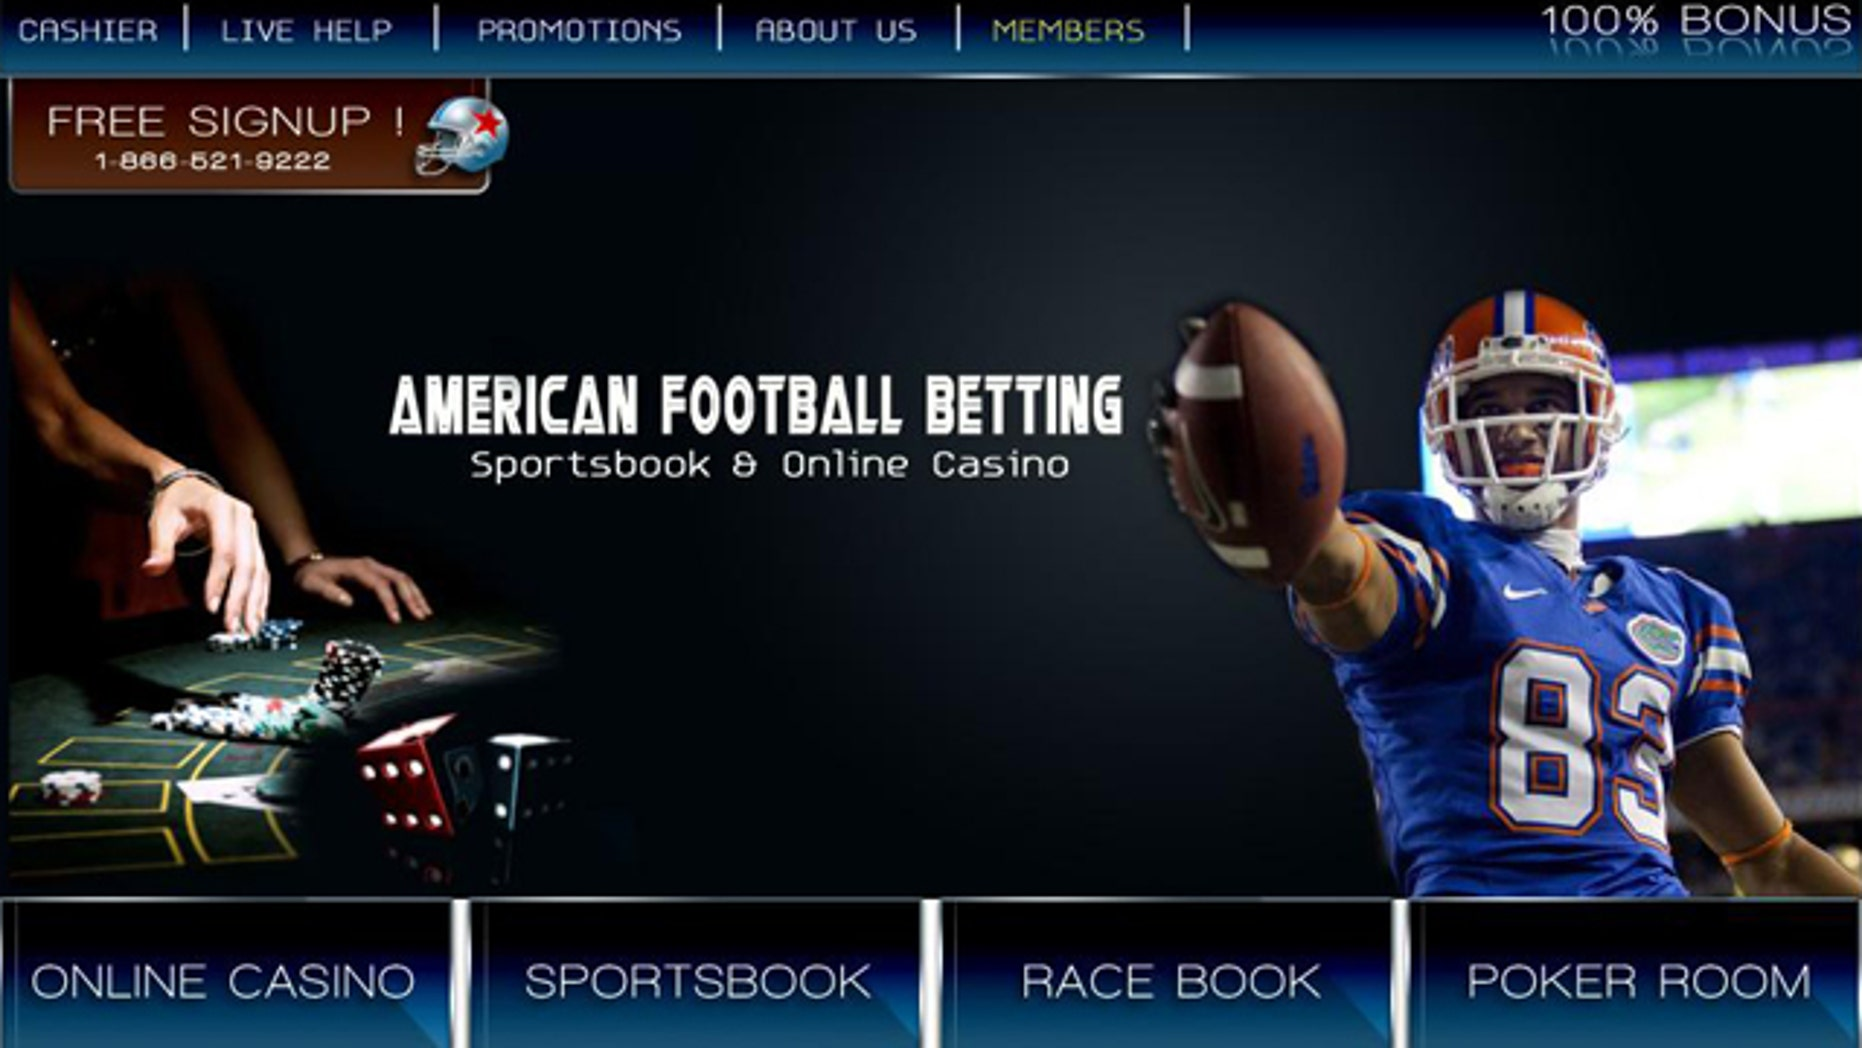 A screen capture of AmericanFootballBetting.com, one of many Web sites dedicated to online gaming.